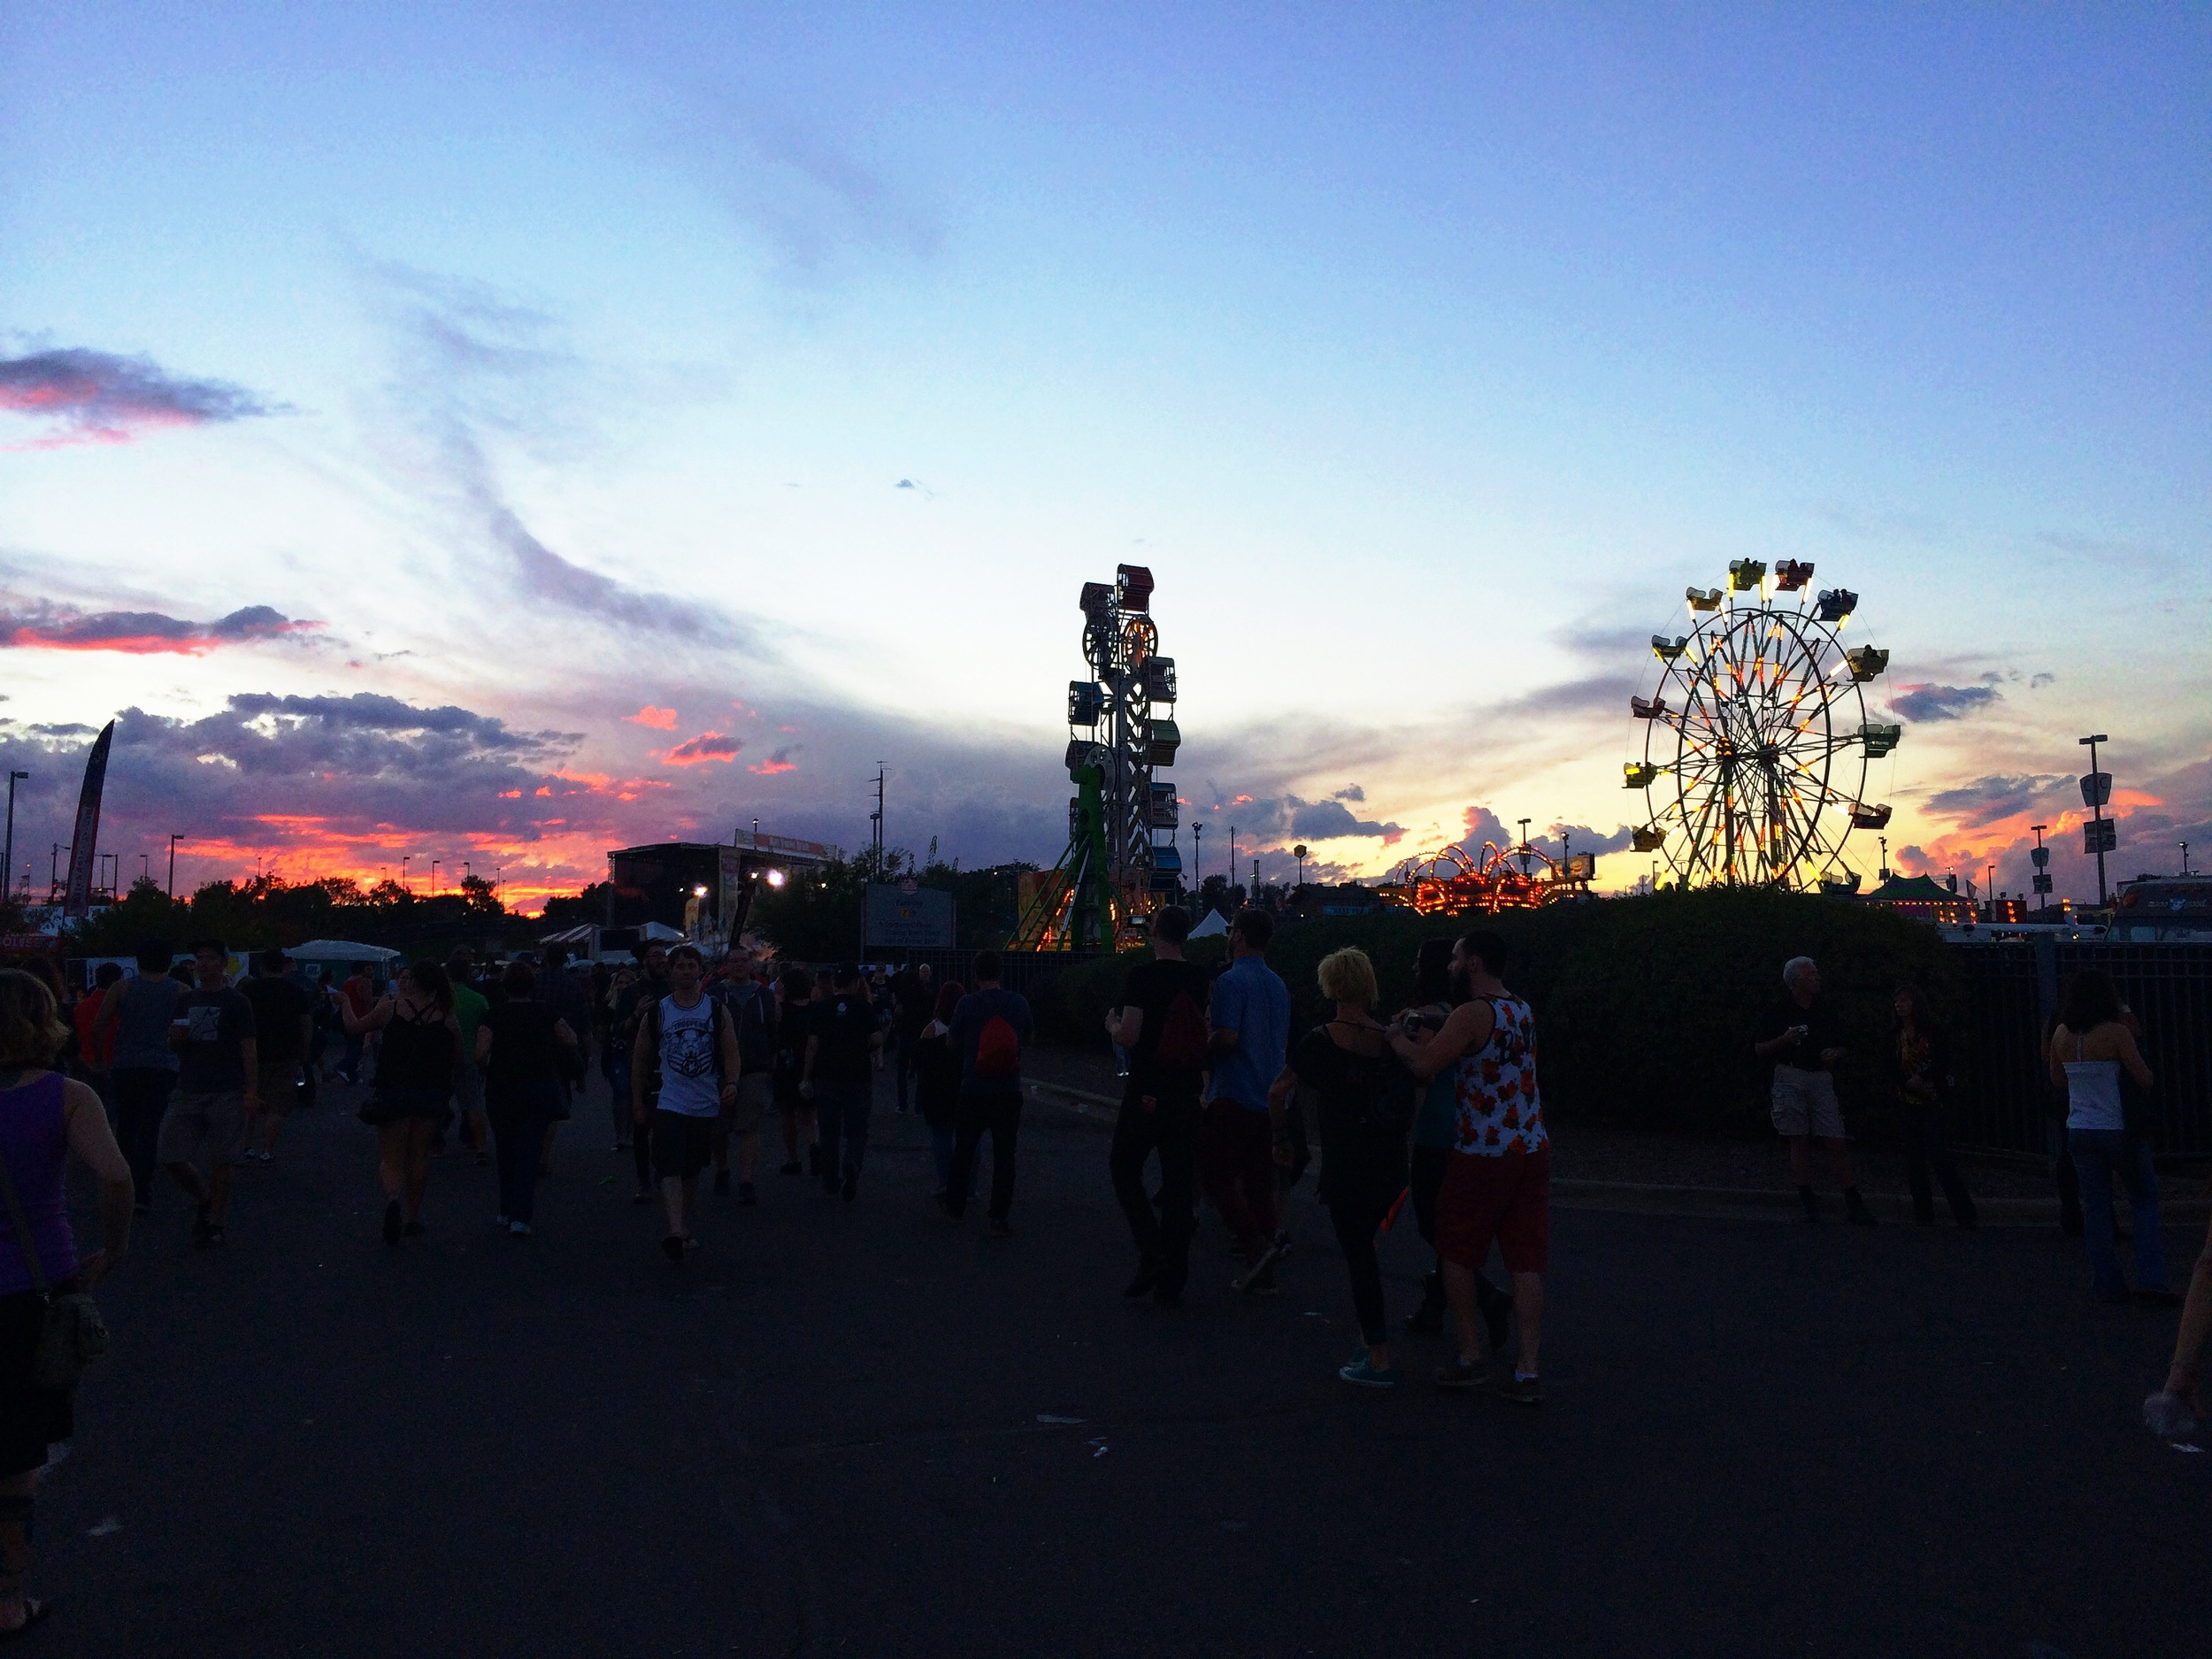 sunset on Day 1